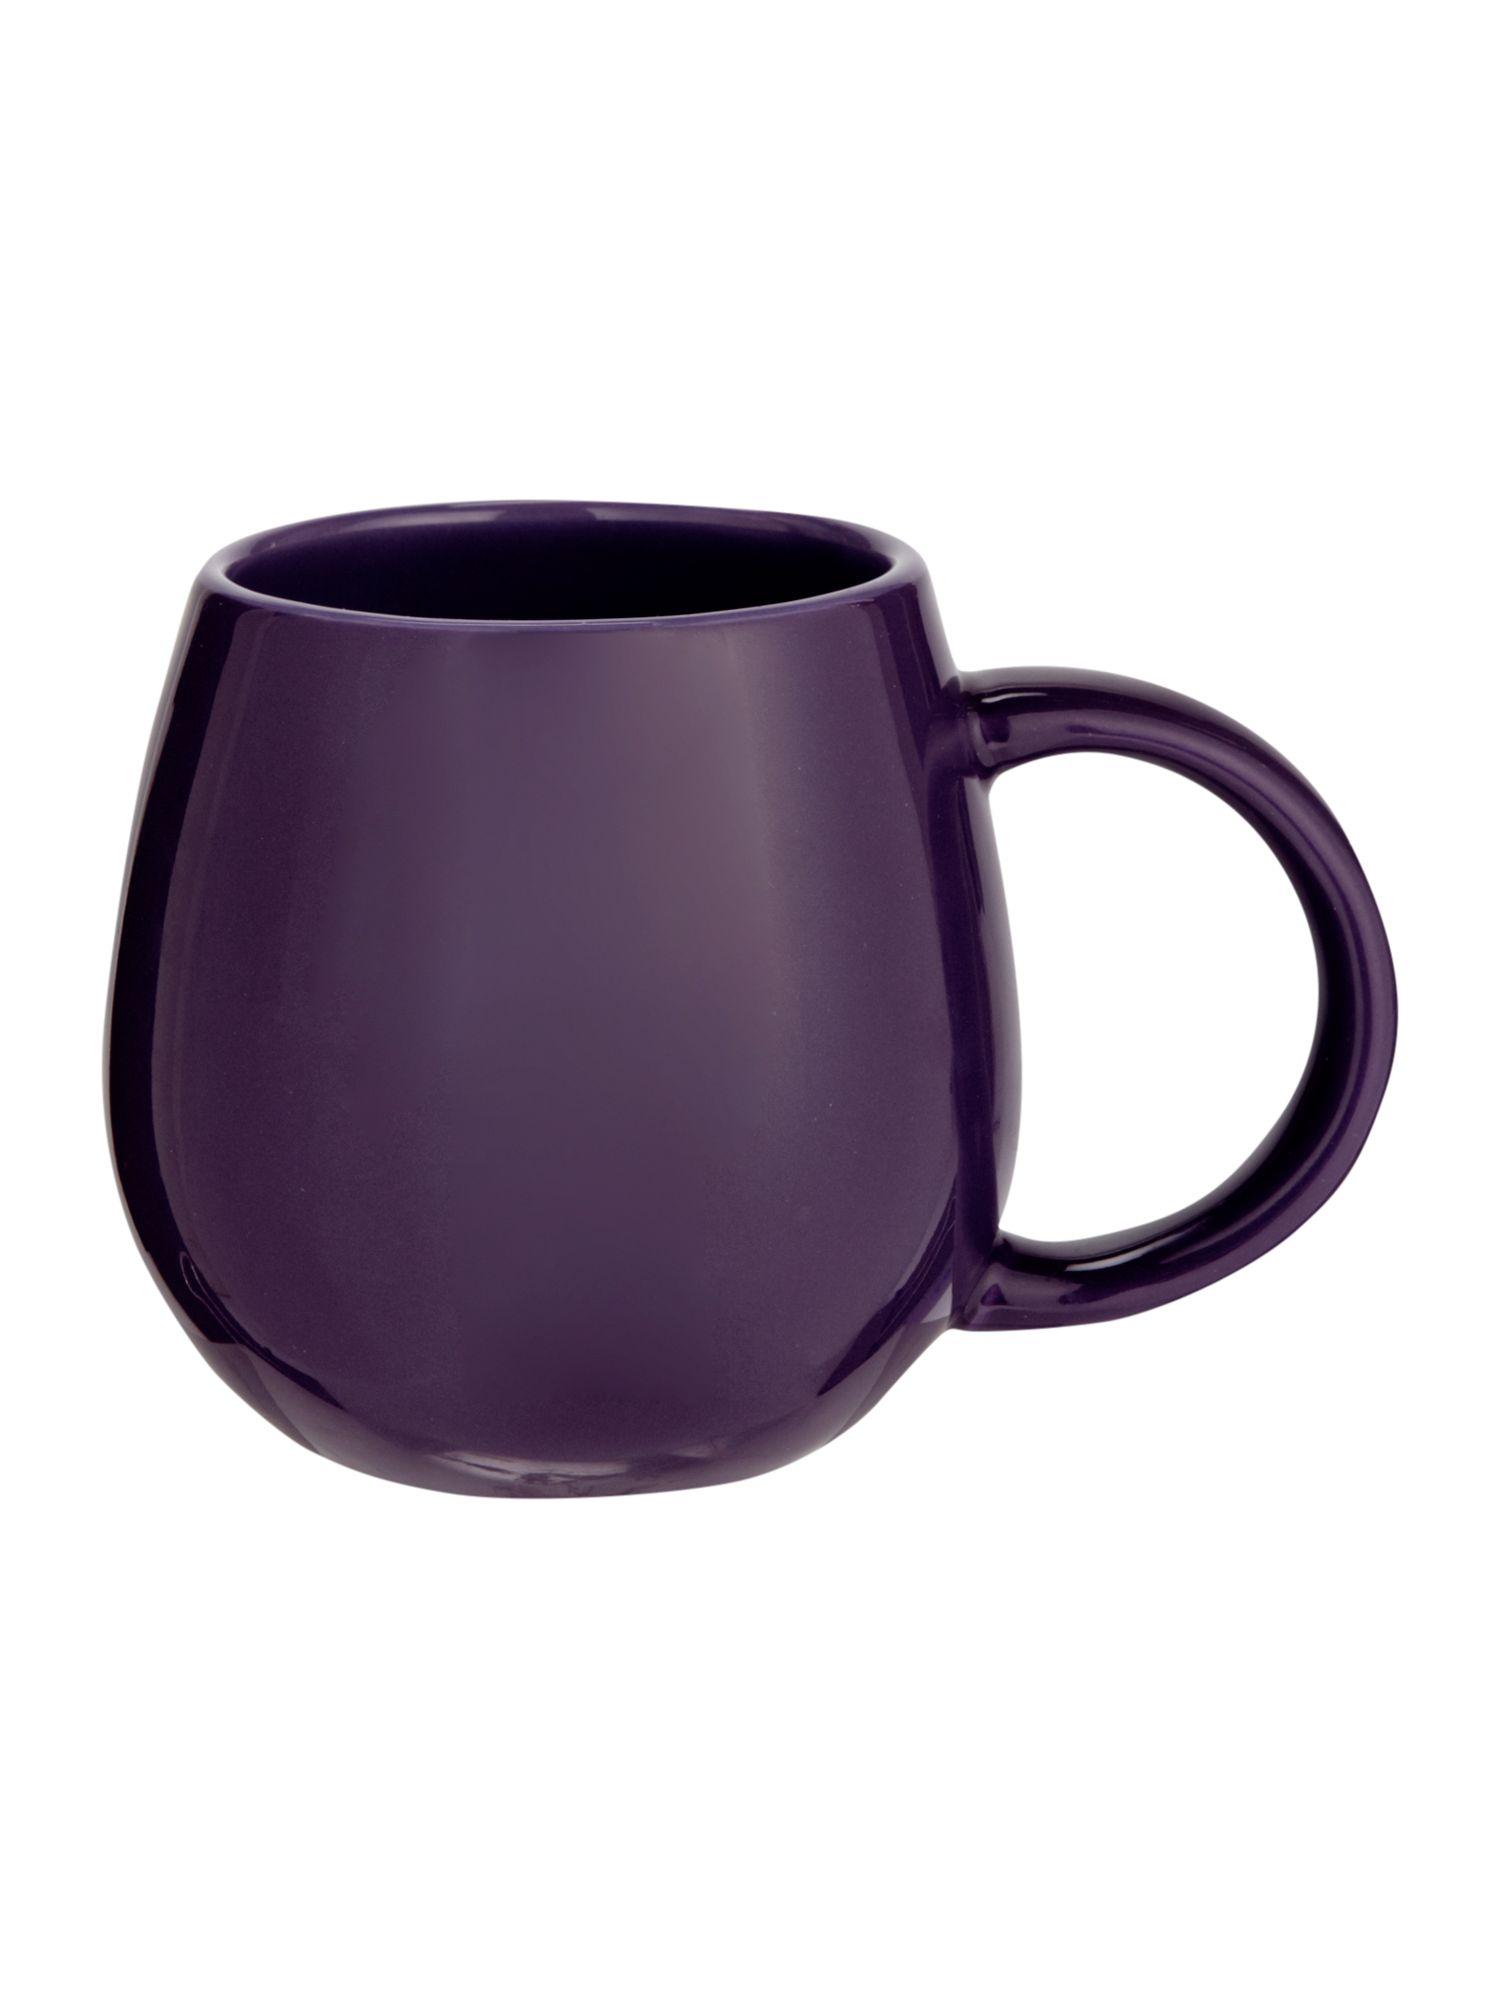 Hug mug purple